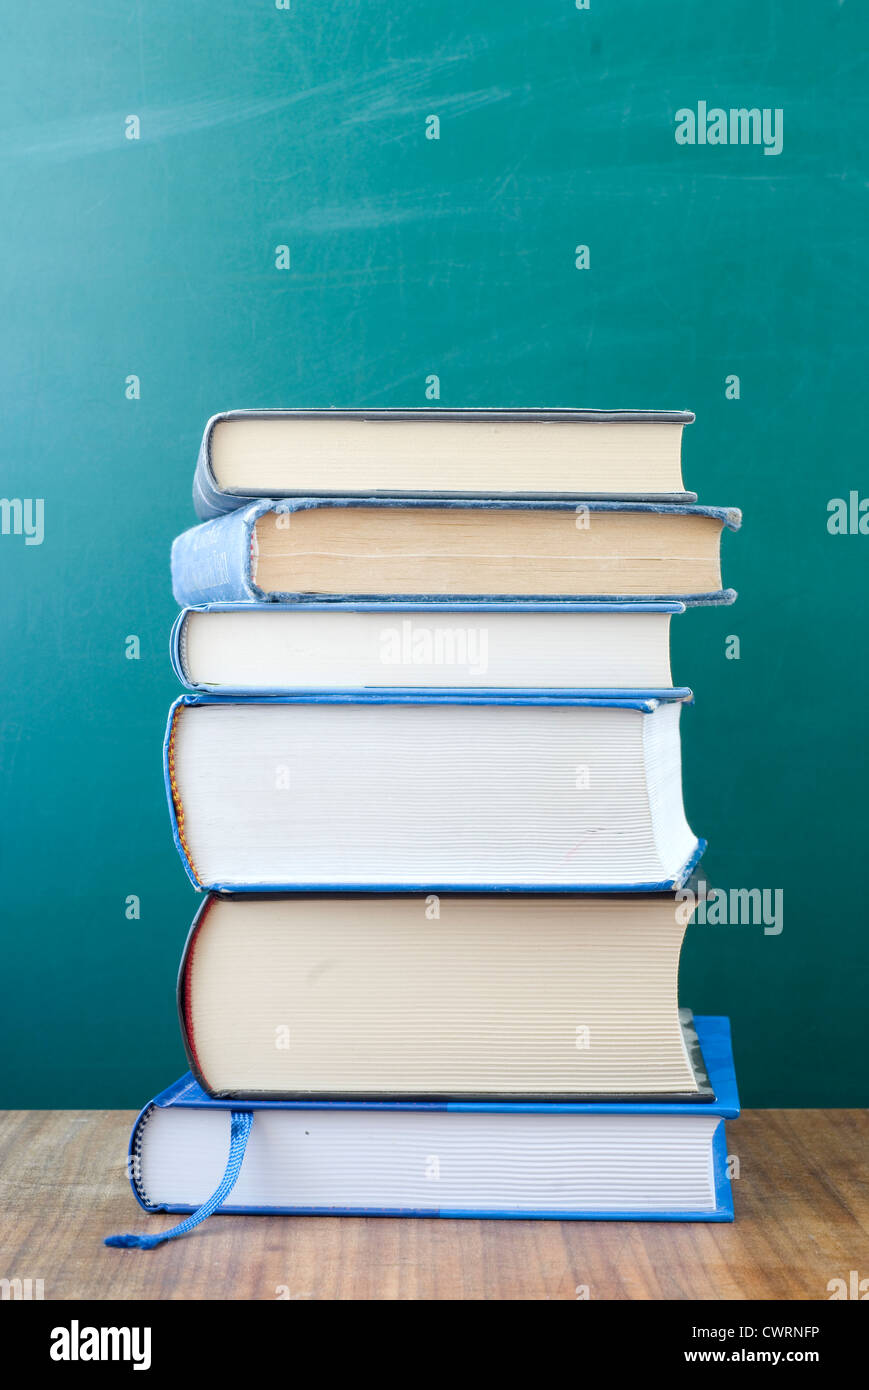 Pile of books on the desk. - Stock Image